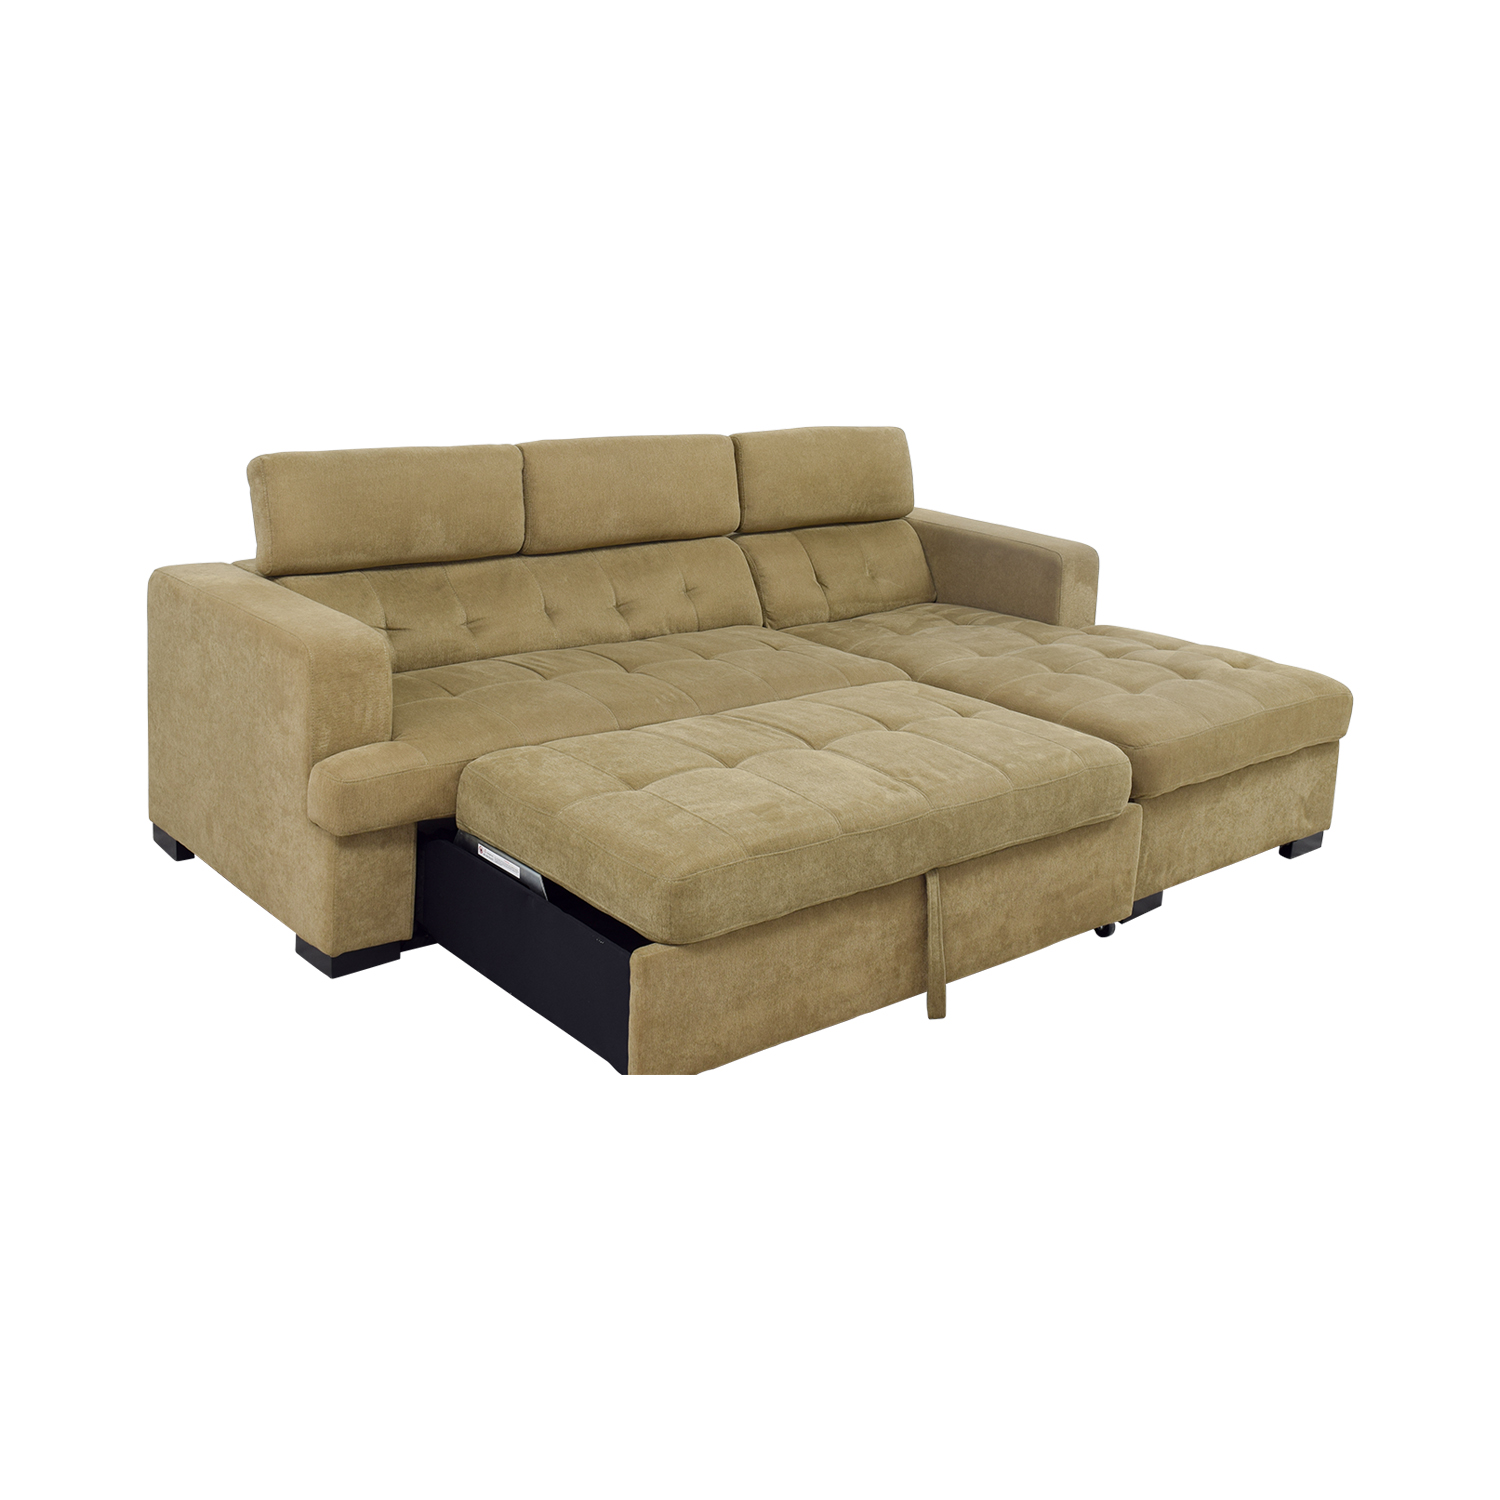 59 off bob 39 s furniture bob 39 s furniture gold chaise